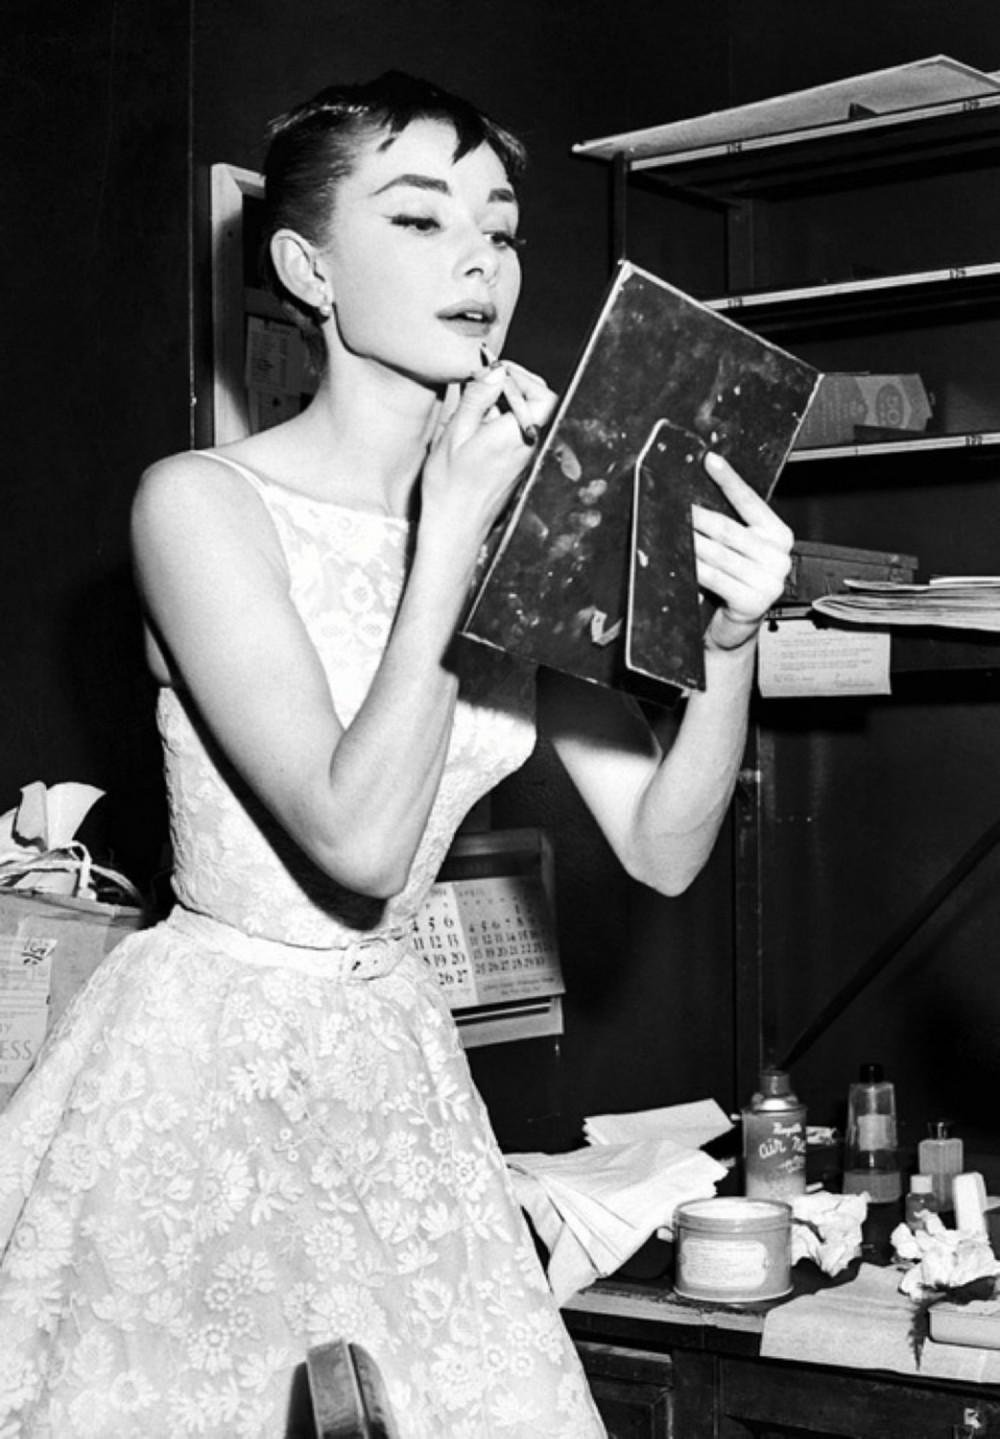 Audrey Hepburn in the Givenchy dress she wore when she won an Oscar for Roman Holiday in 1954